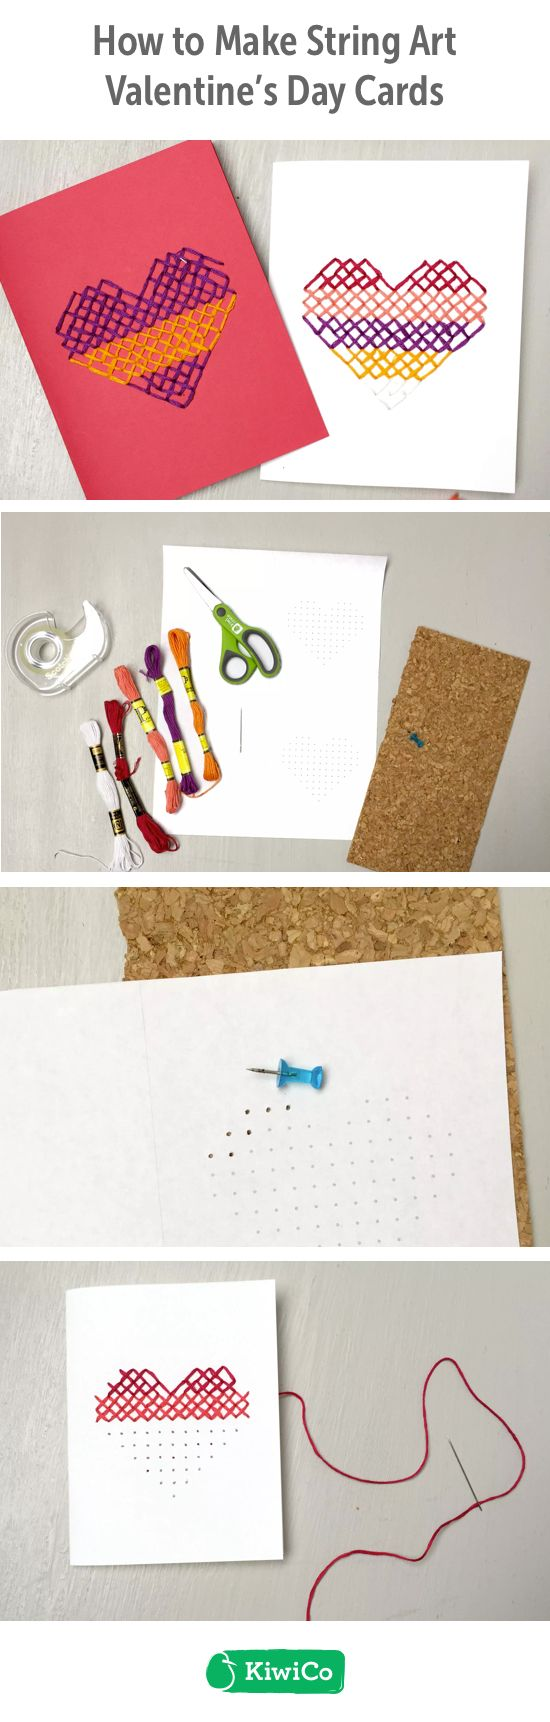 String art valentine diy this do it yourself paper craft is great string art valentine diy this do it yourself paper craft is great for valentines day for all ages explore sewing to make unique designs on each solutioingenieria Gallery